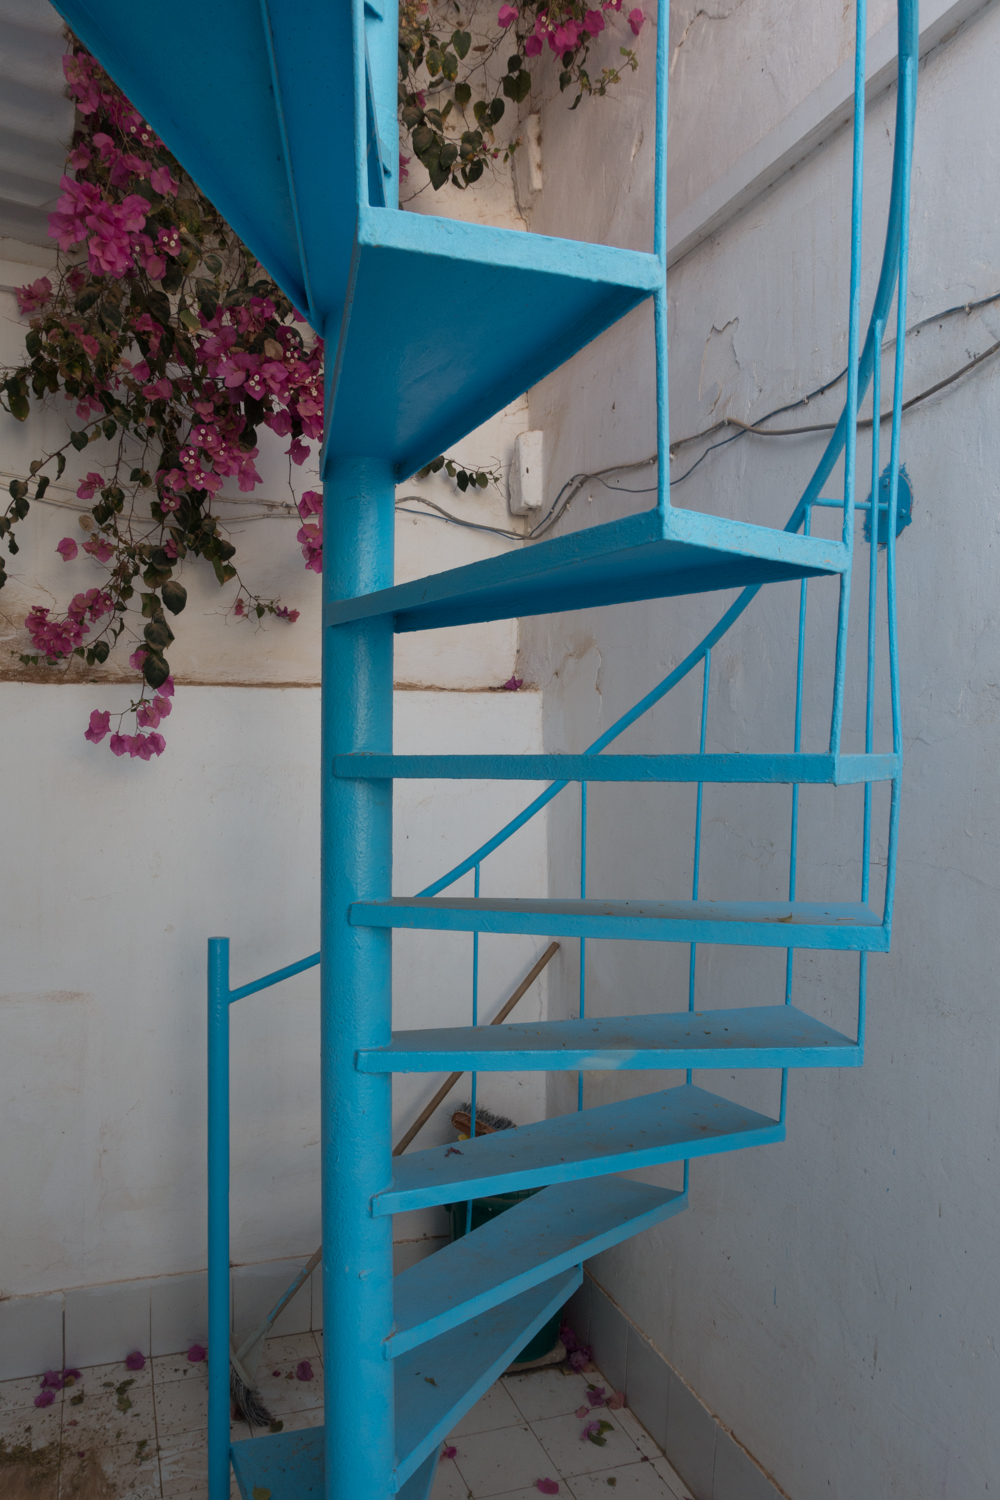 Stairs going up to the terrace (and the beautifulBougainvillea peaking from above)